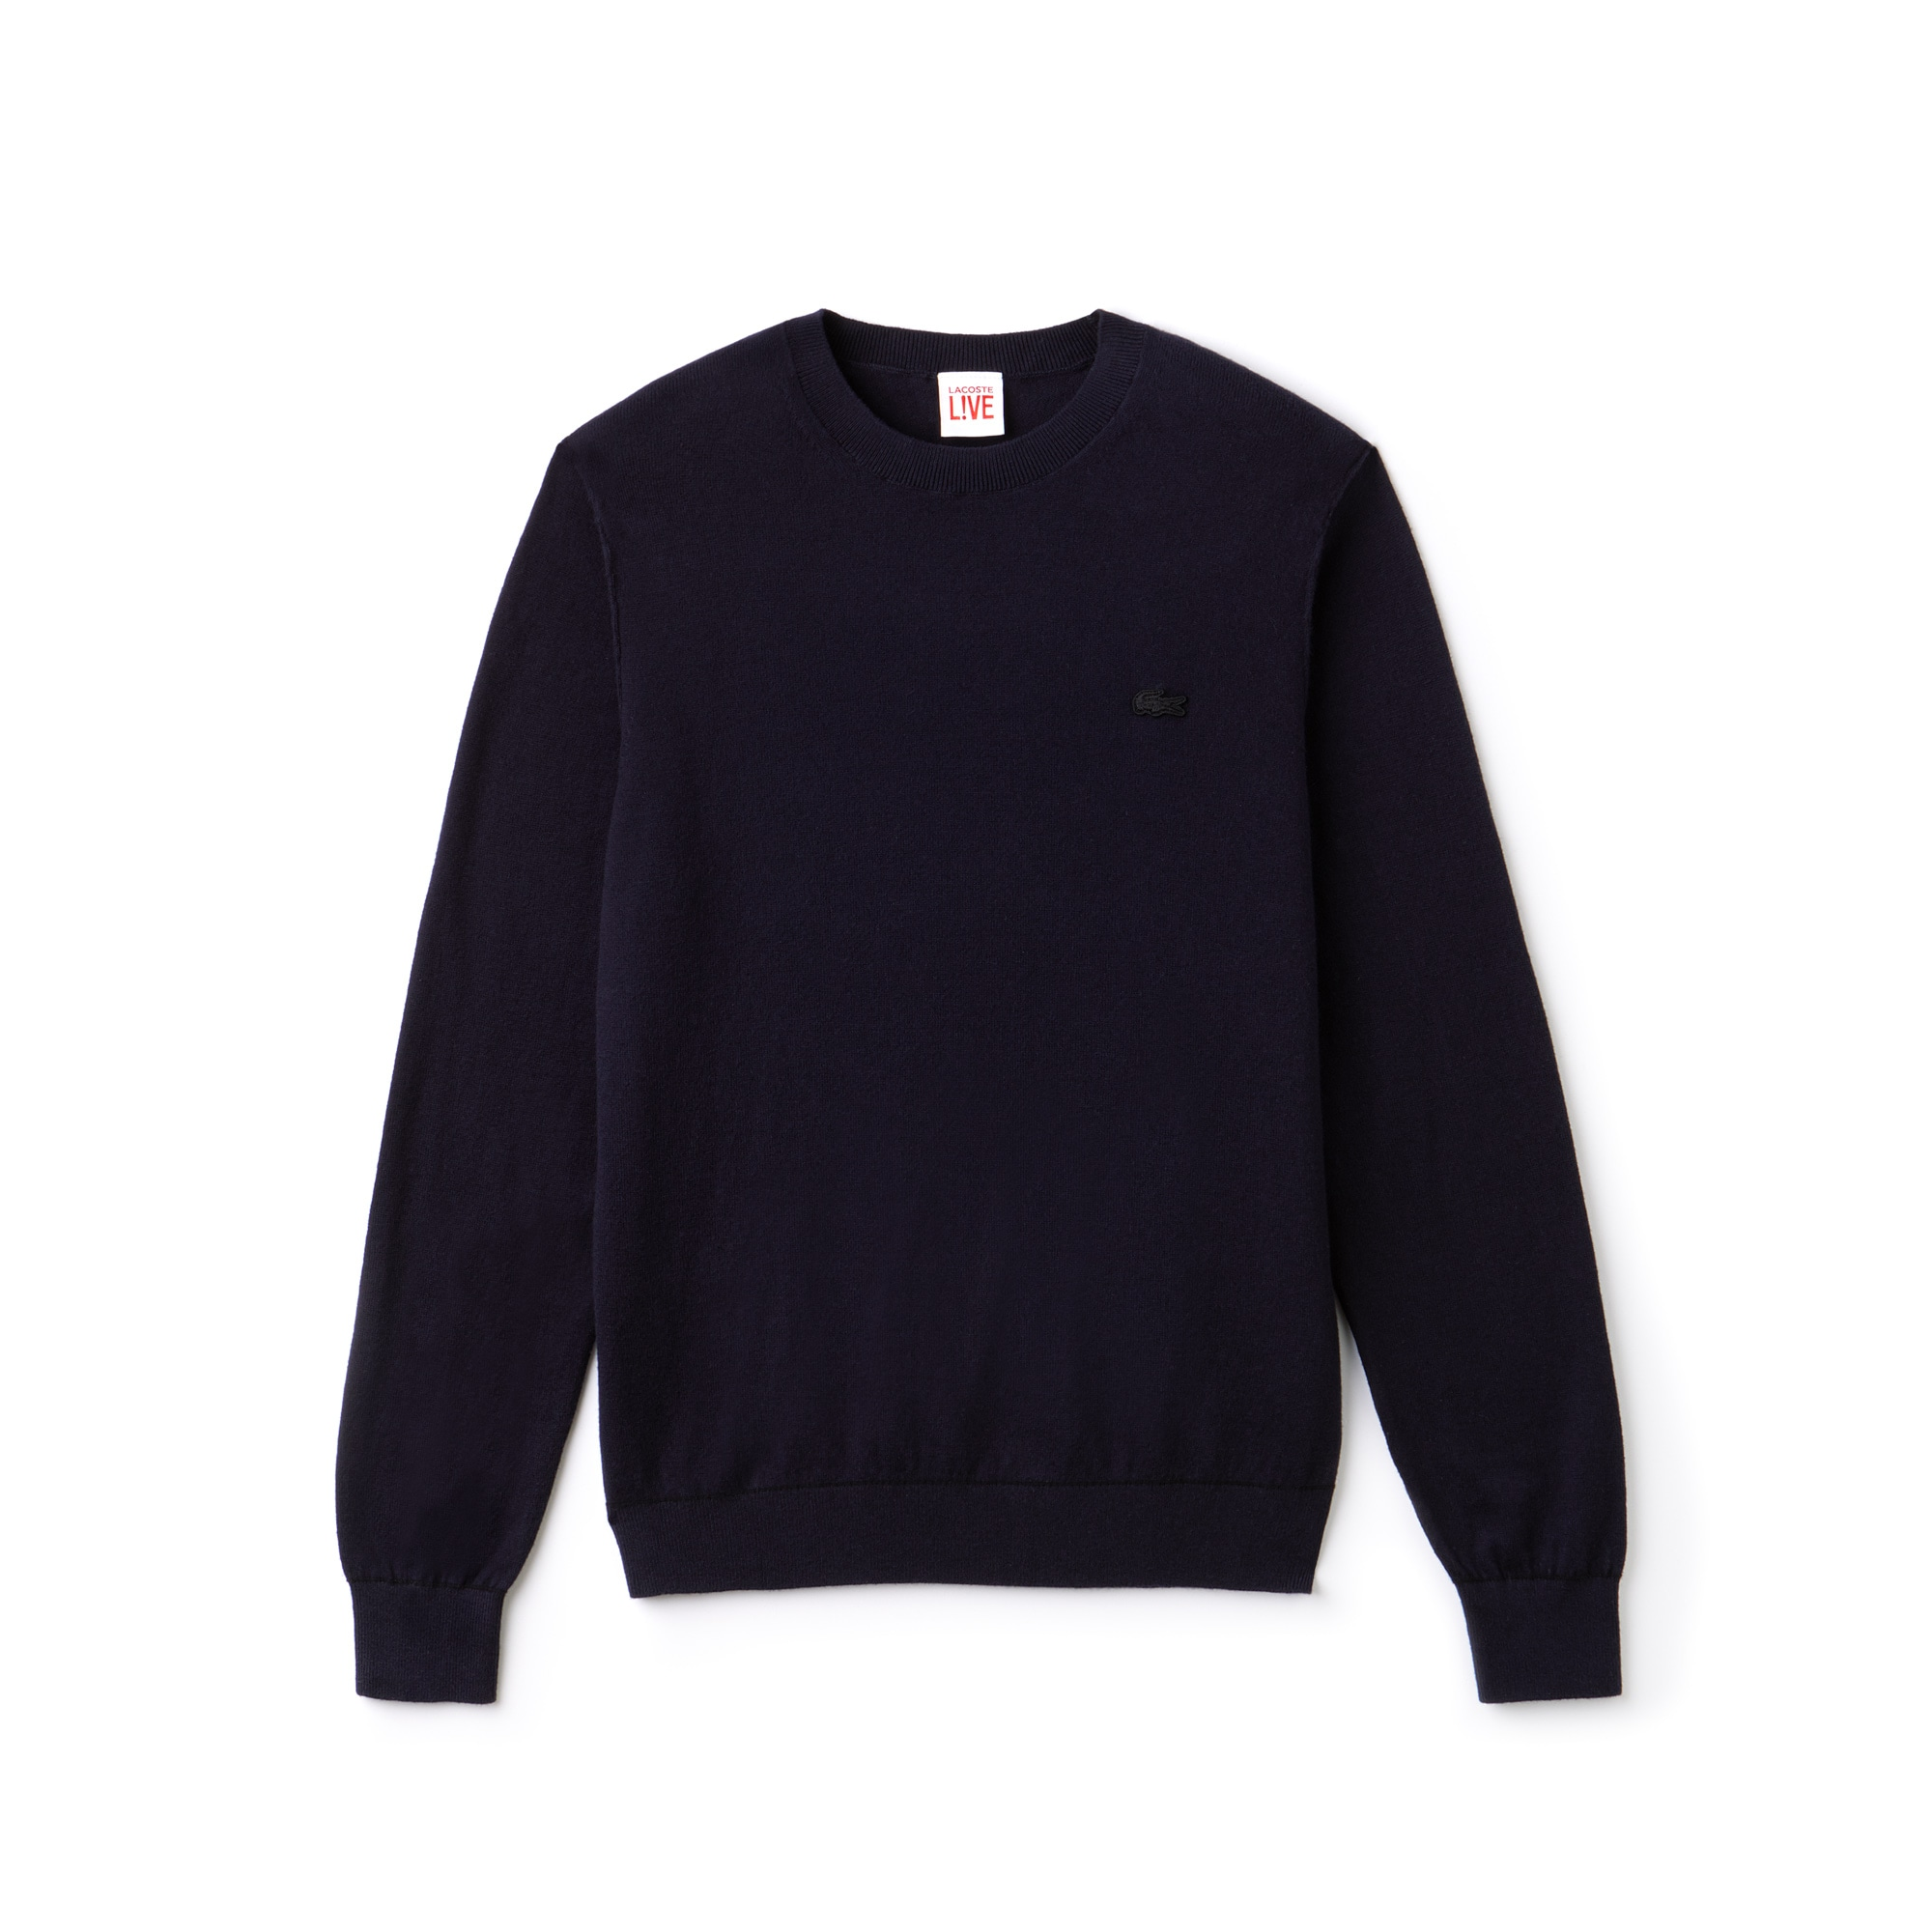 Men's Lacoste LIVE Crew Neck Cotton And Cashmere Jersey Sweater